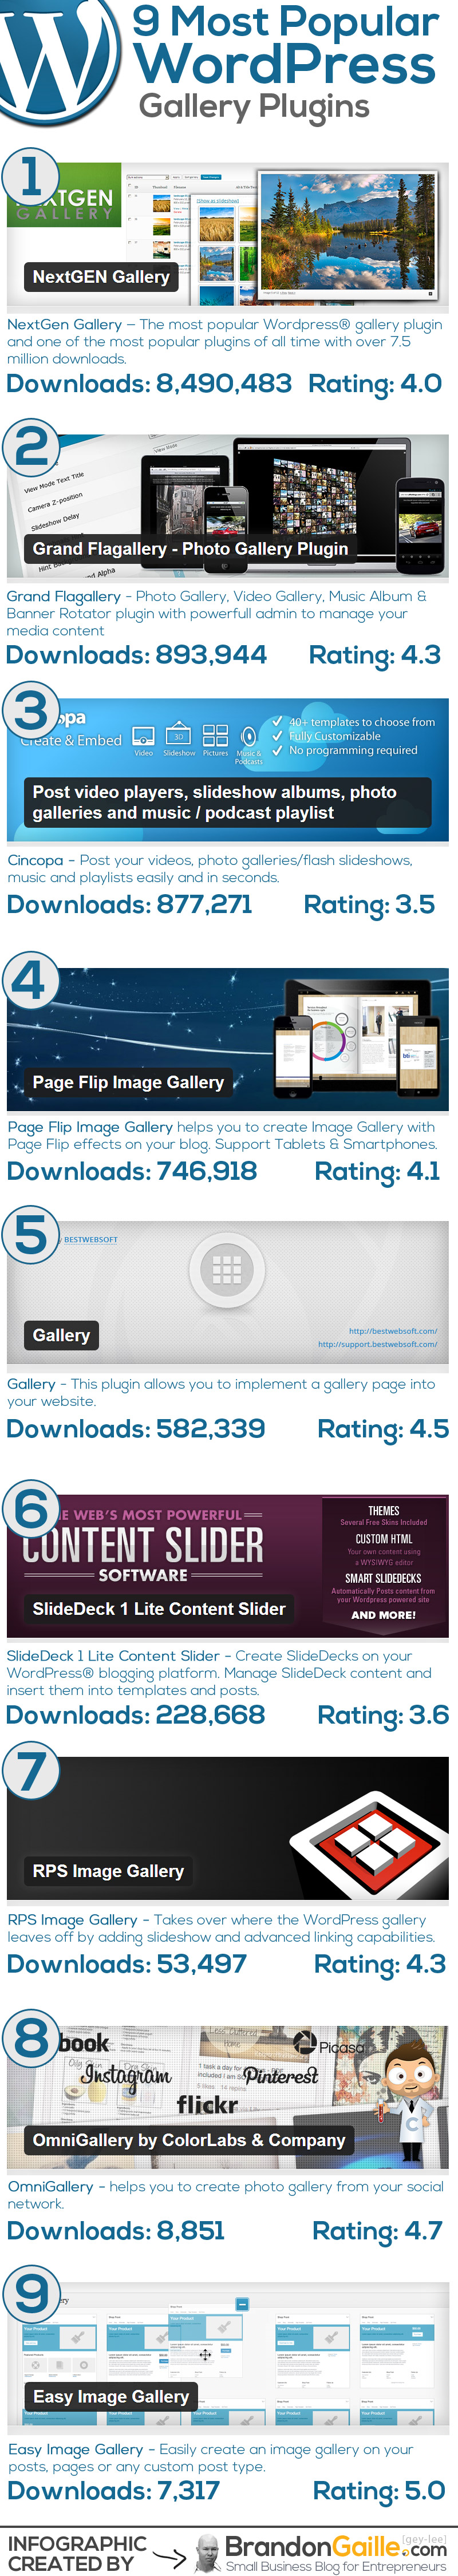 Best Wordpress Photo Gallery Plugins Infographic 9 Best Wordpress Photo Gallery Plugins